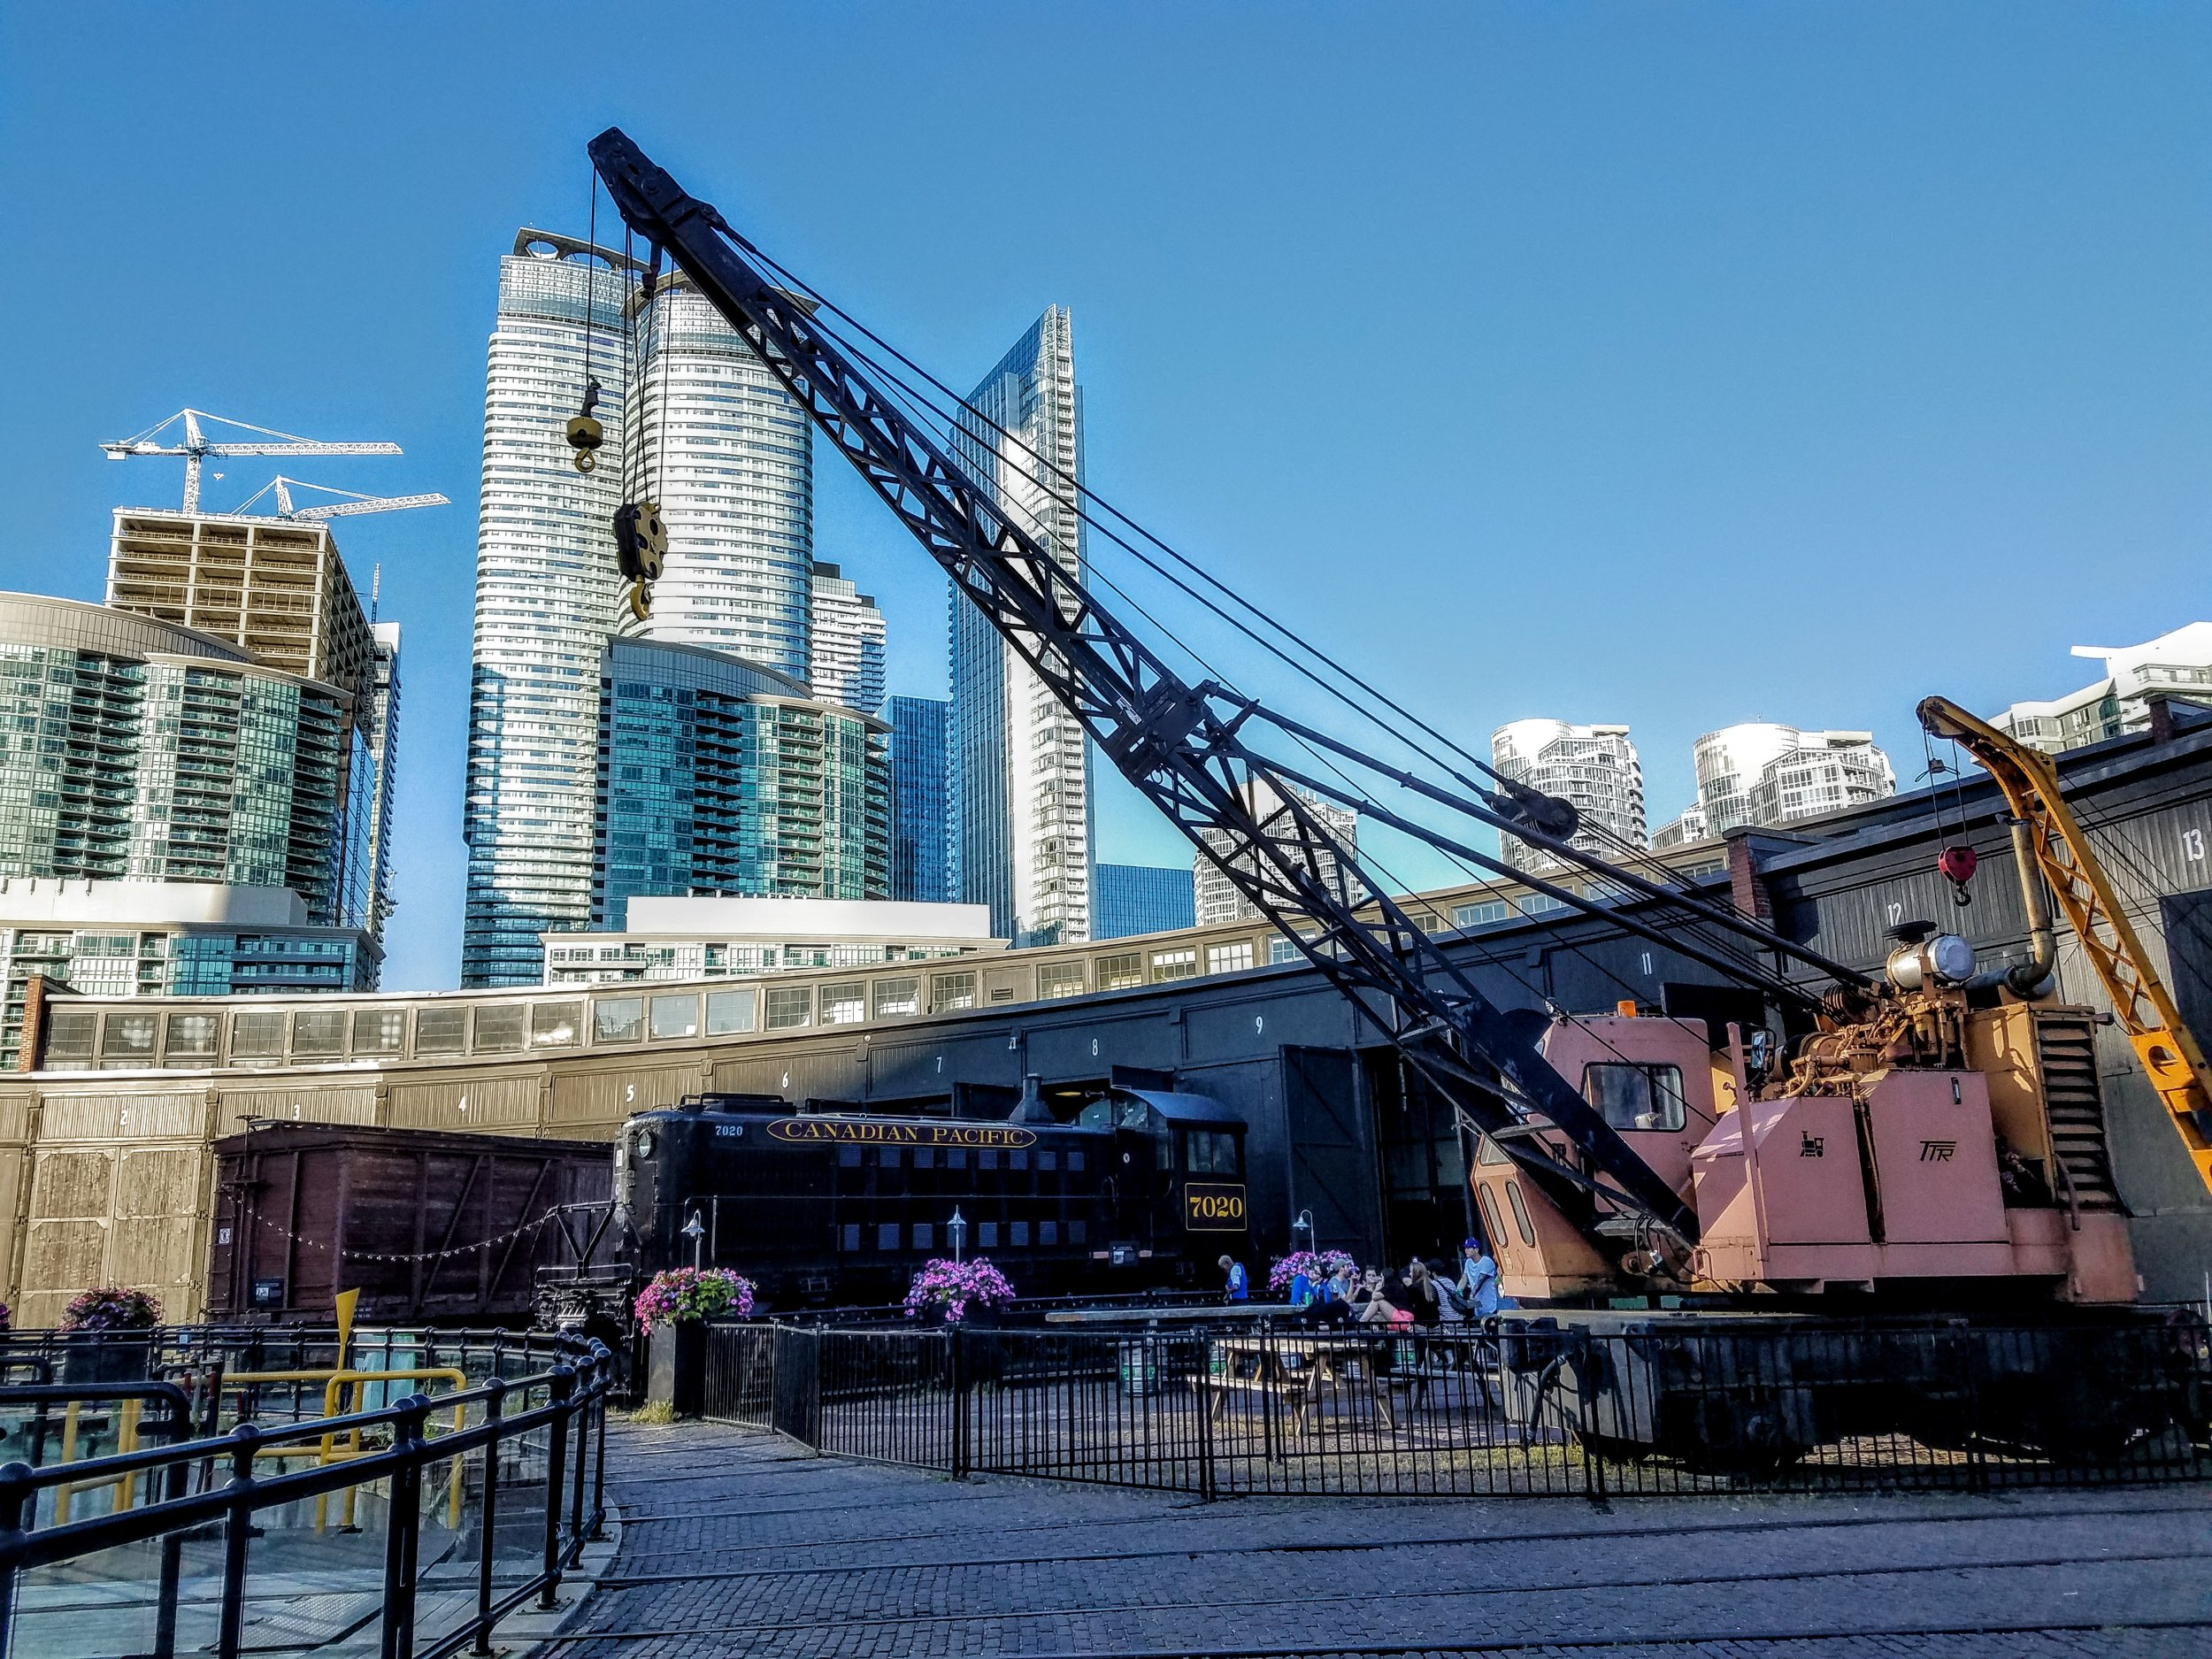 The Roundhouse stations and historic trains and cranes